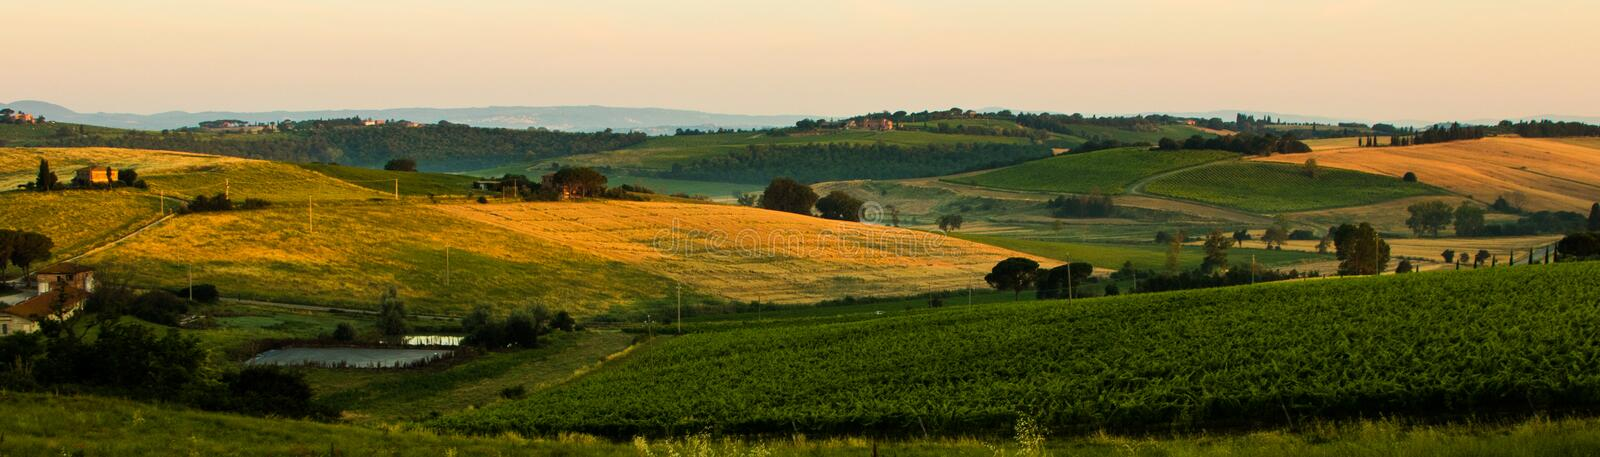 Italian Countryside IV. The countryside outside Montepulciano bathed in the morning light stock images